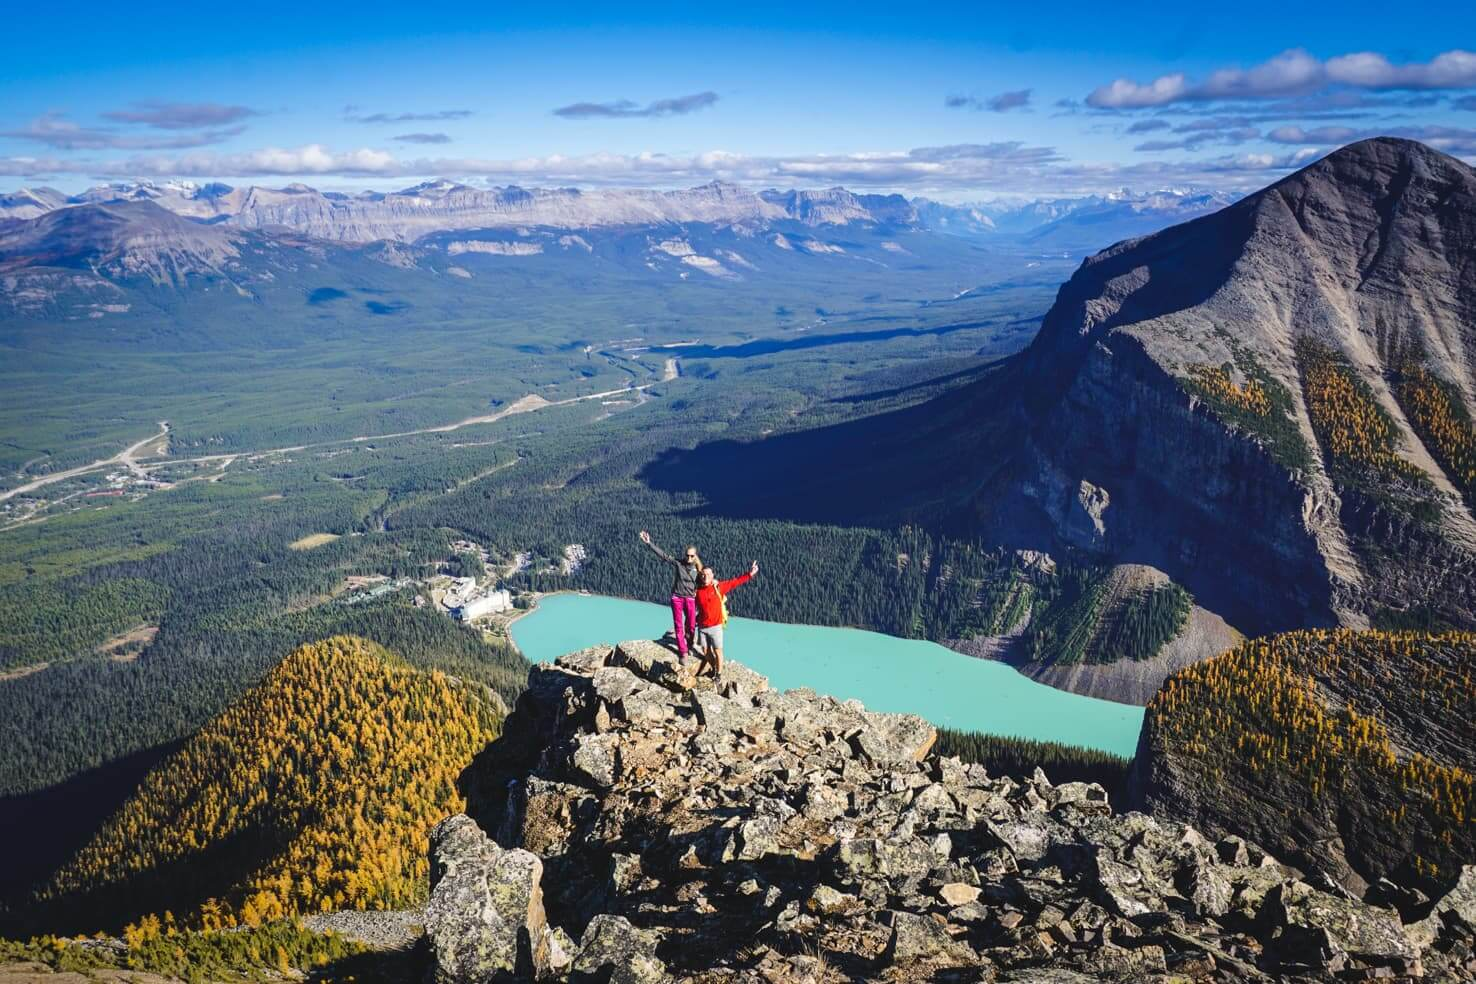 15 day hikes near Calgary with jaw-dropping views - Mount St. Piran